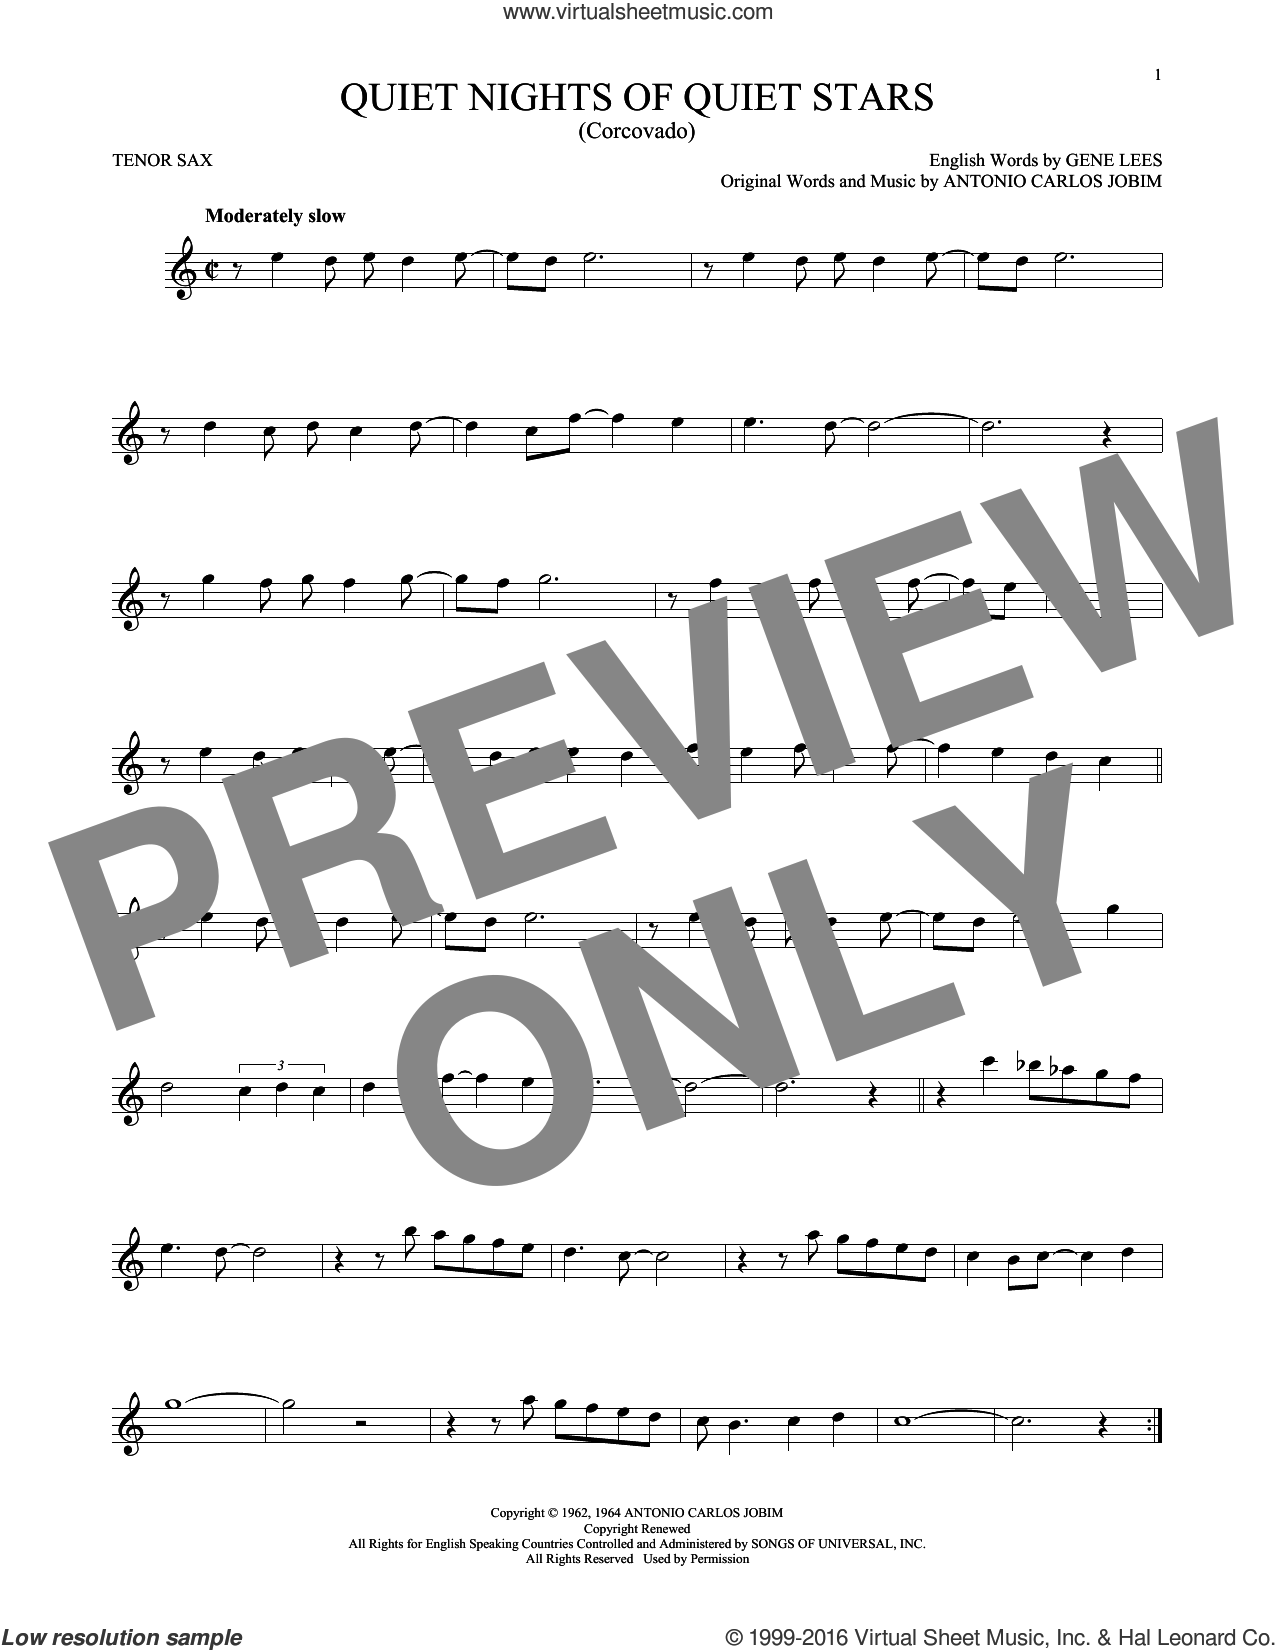 Quiet Nights Of Quiet Stars (Corcovado) sheet music for tenor saxophone solo by Andy Williams, Antonio Carlos Jobim and Eugene John Lees, intermediate